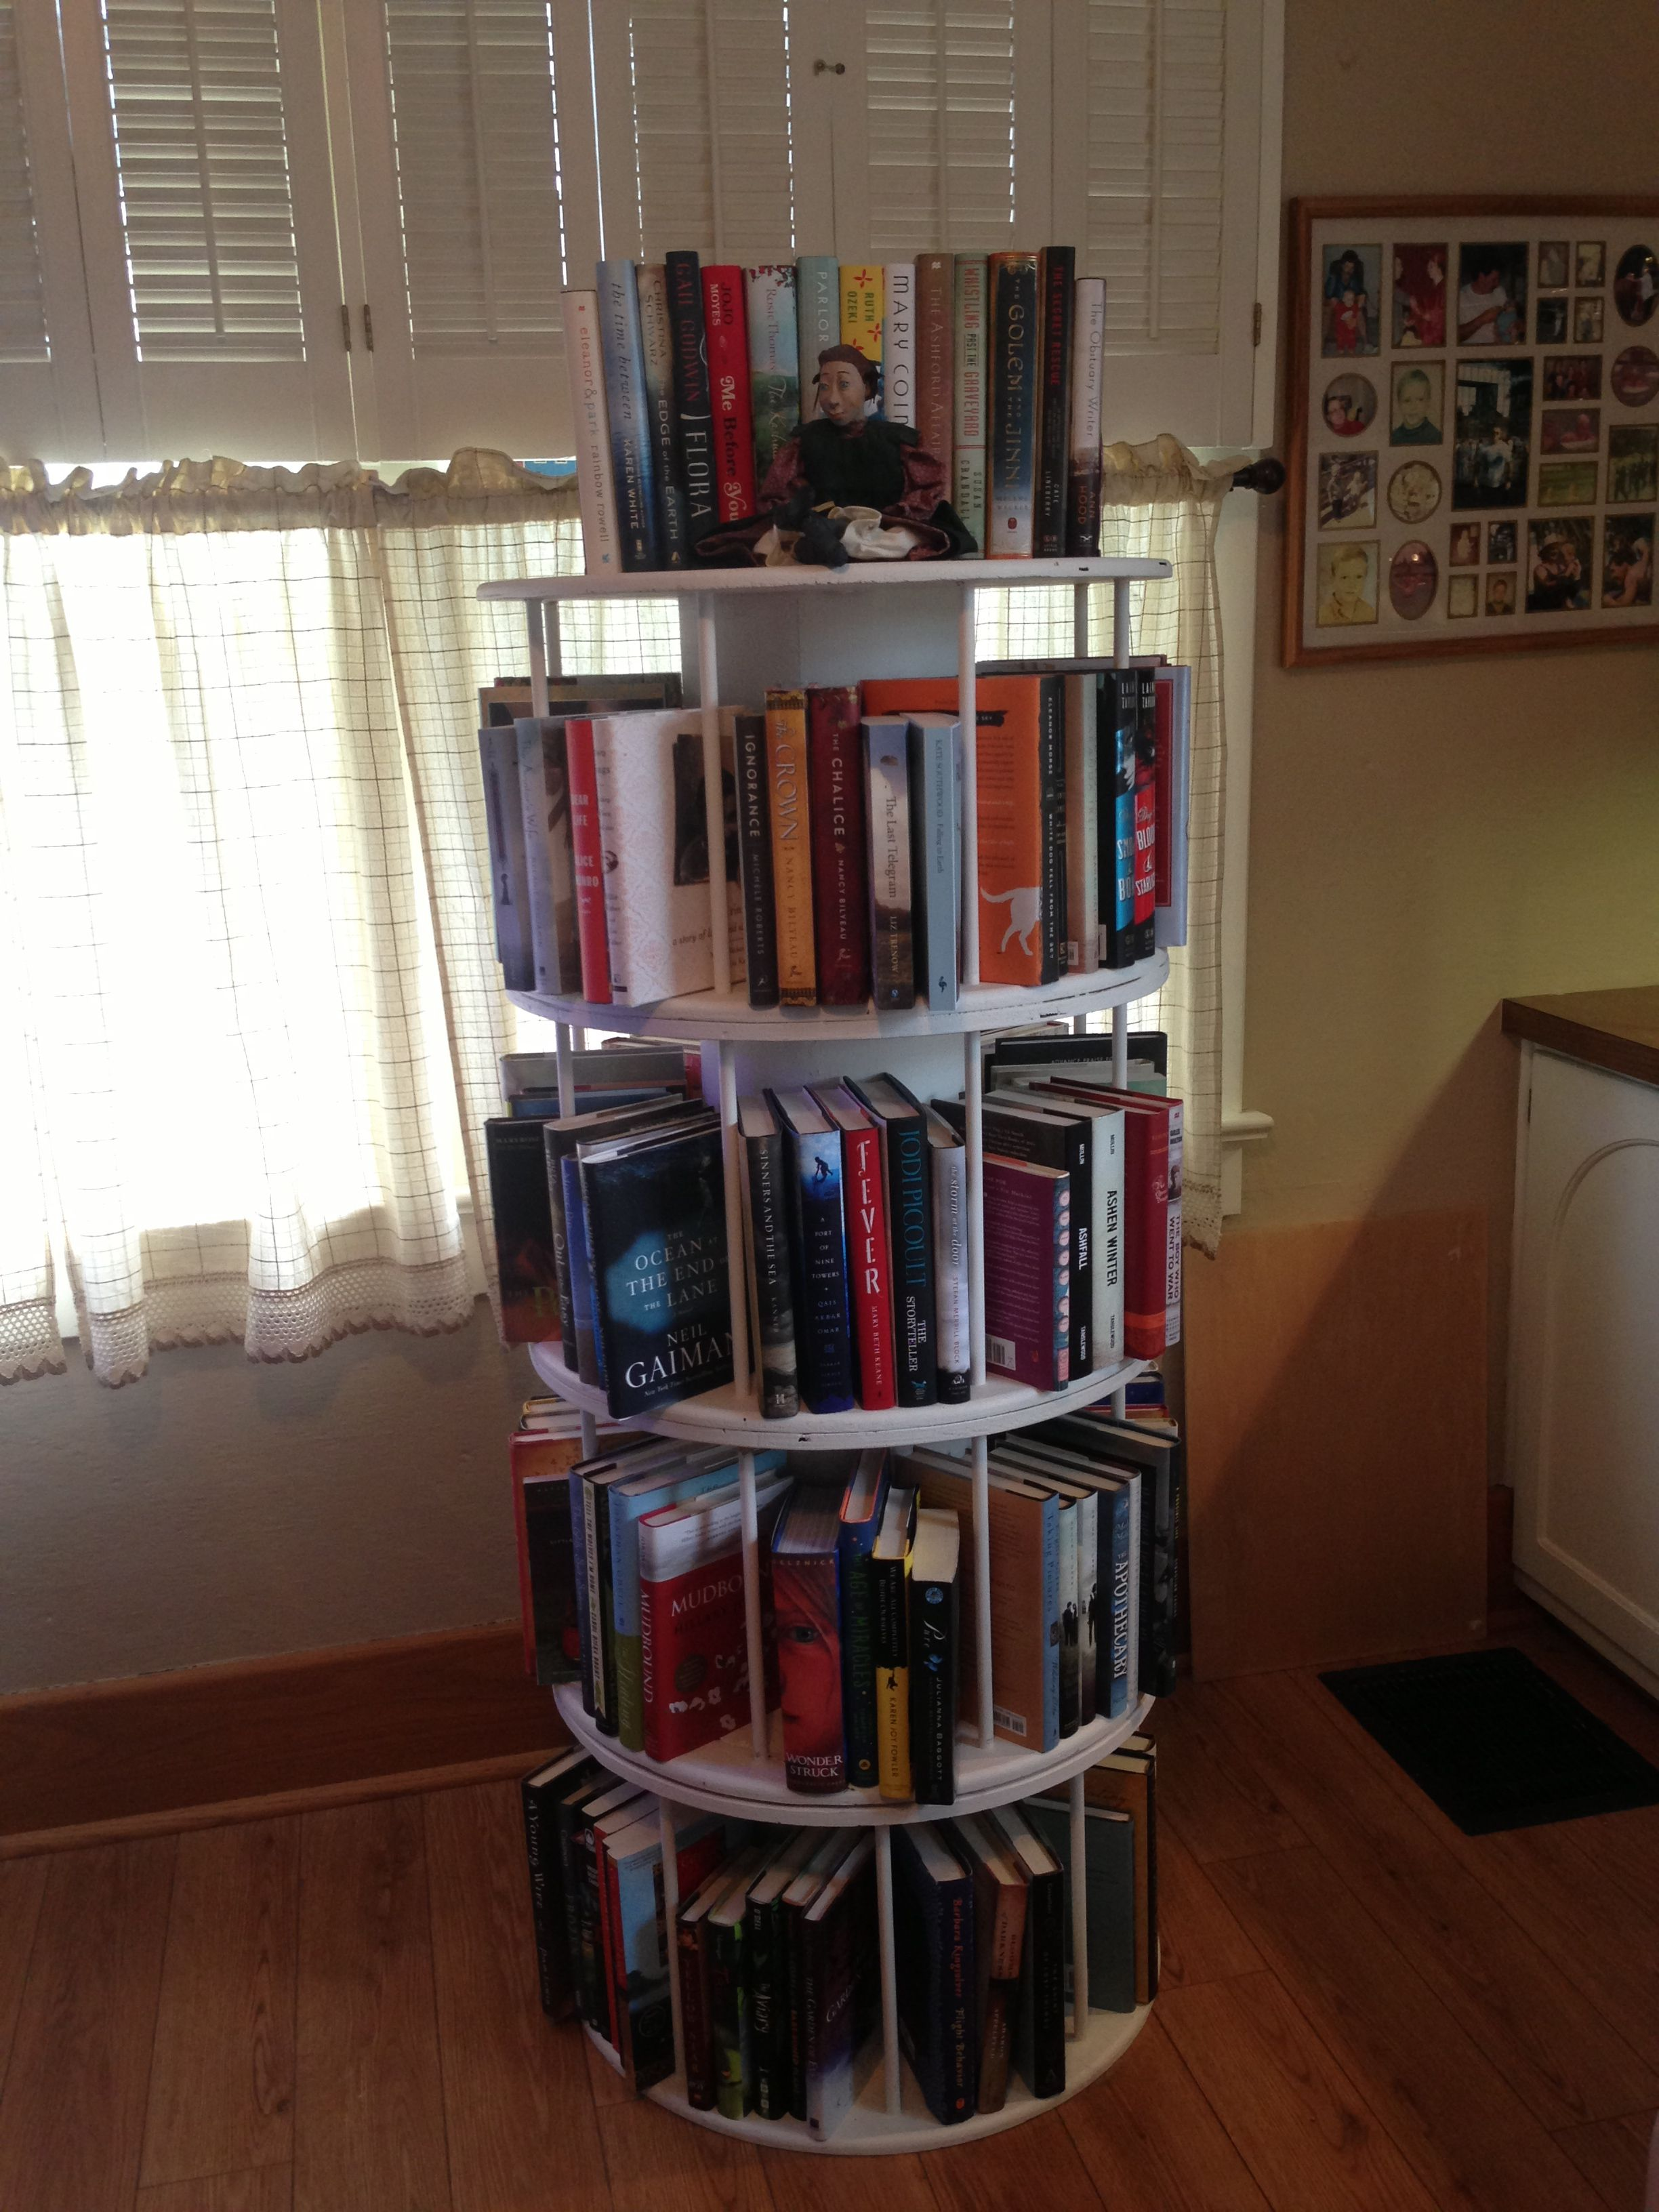 The Rotating Bookshelf My Husband Made From Wire Spools